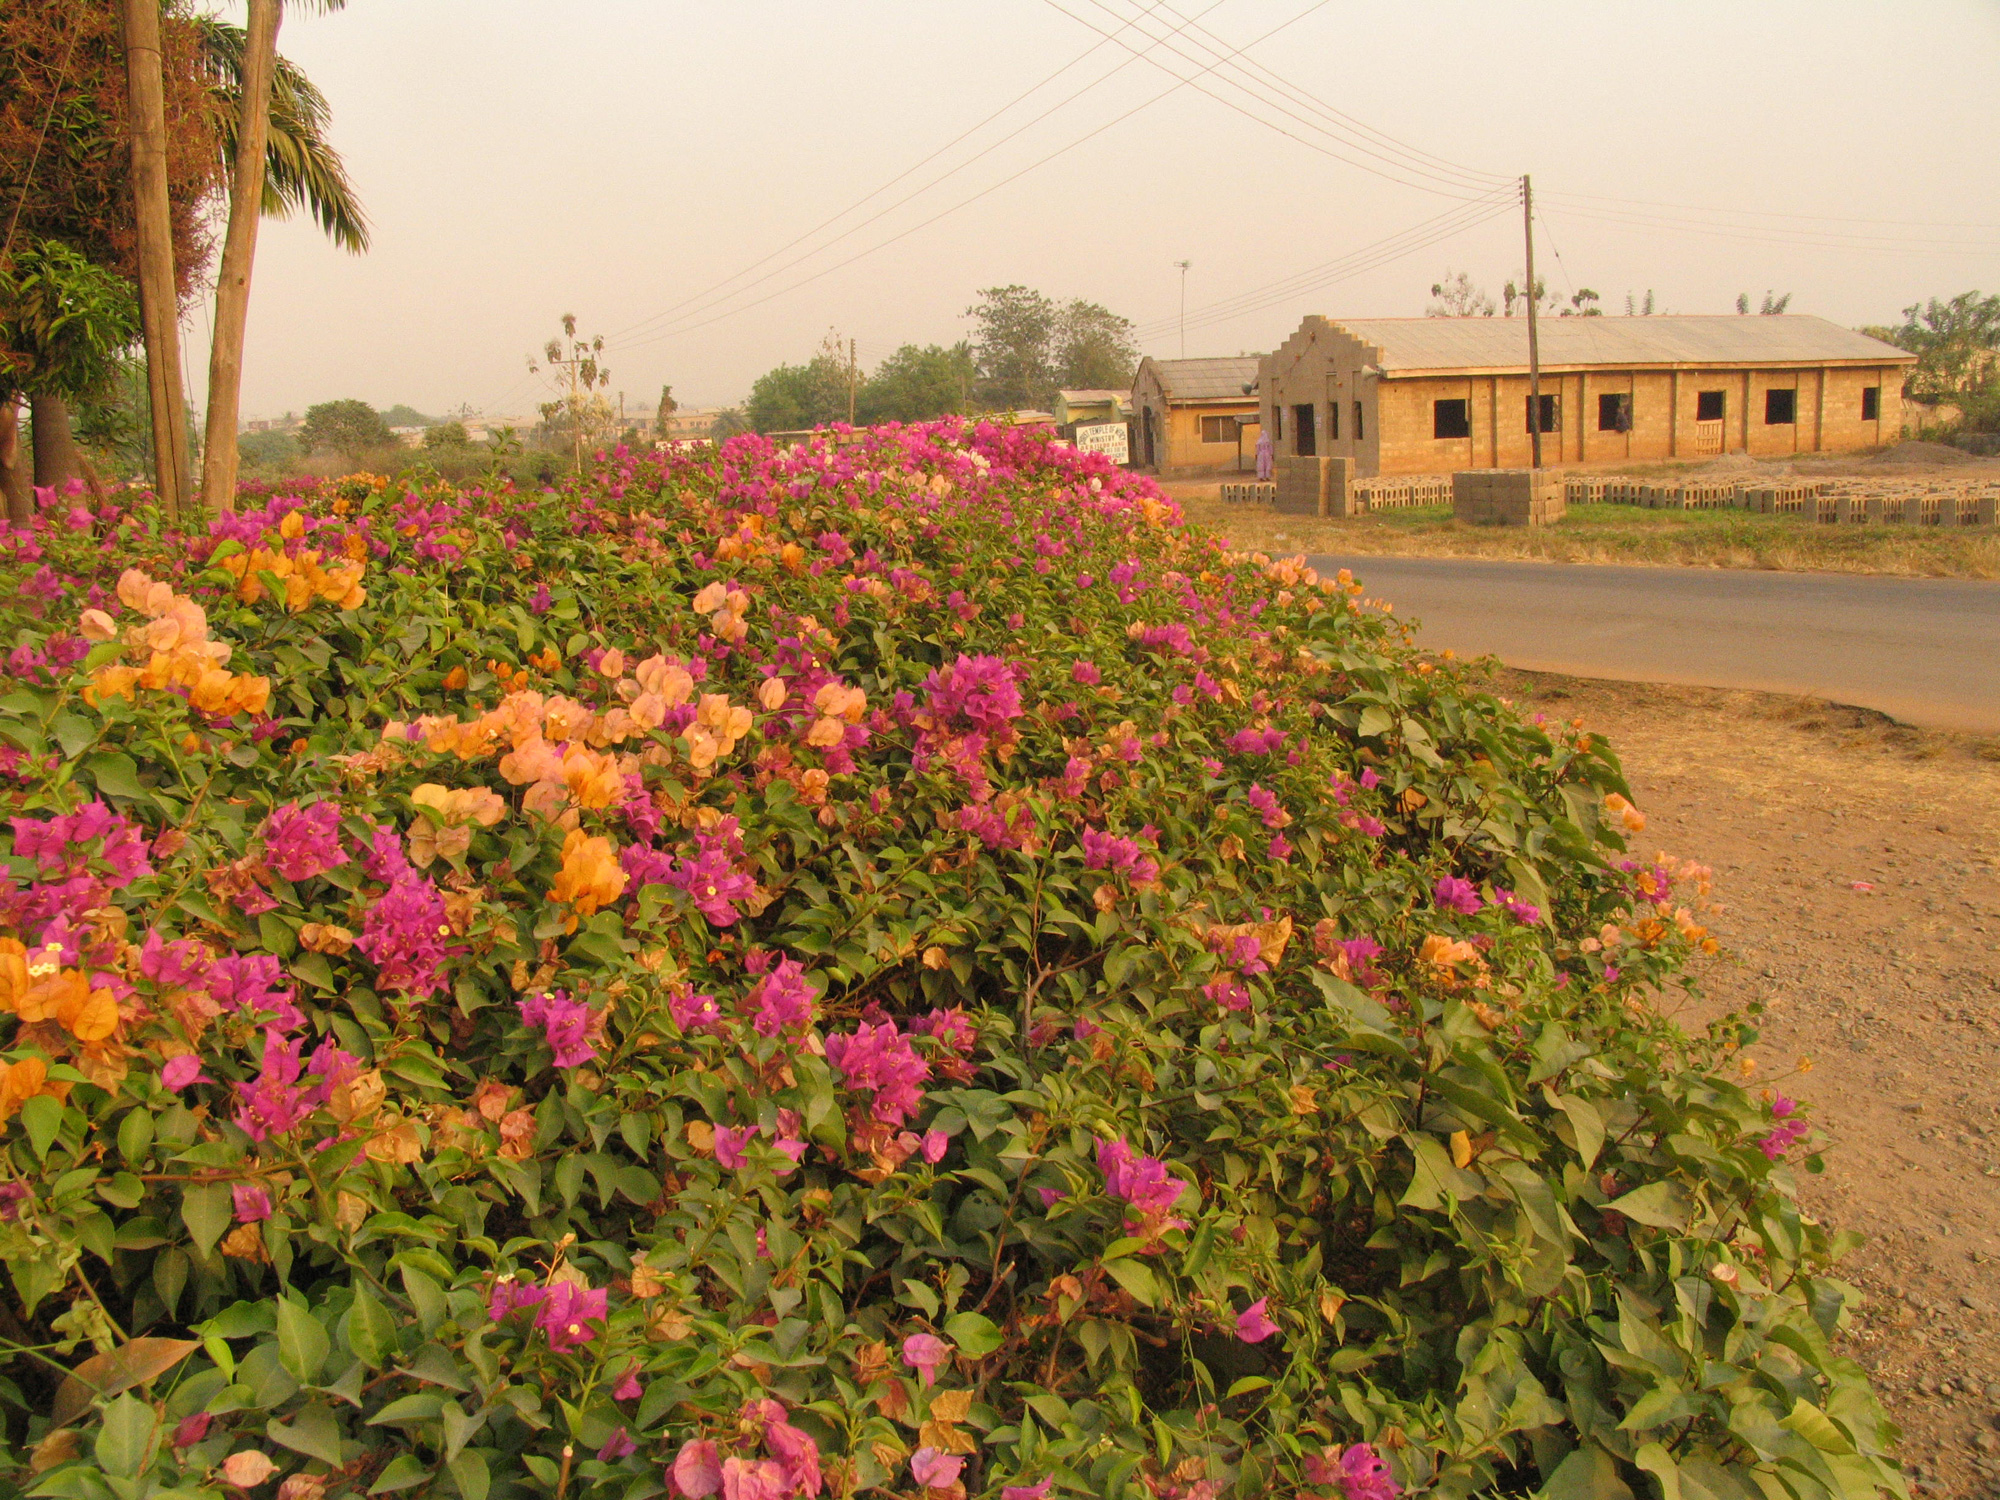 The beautiful red colored sunlight during dry season in Òṣogbo, Nigeria.©Wolfgang Denk